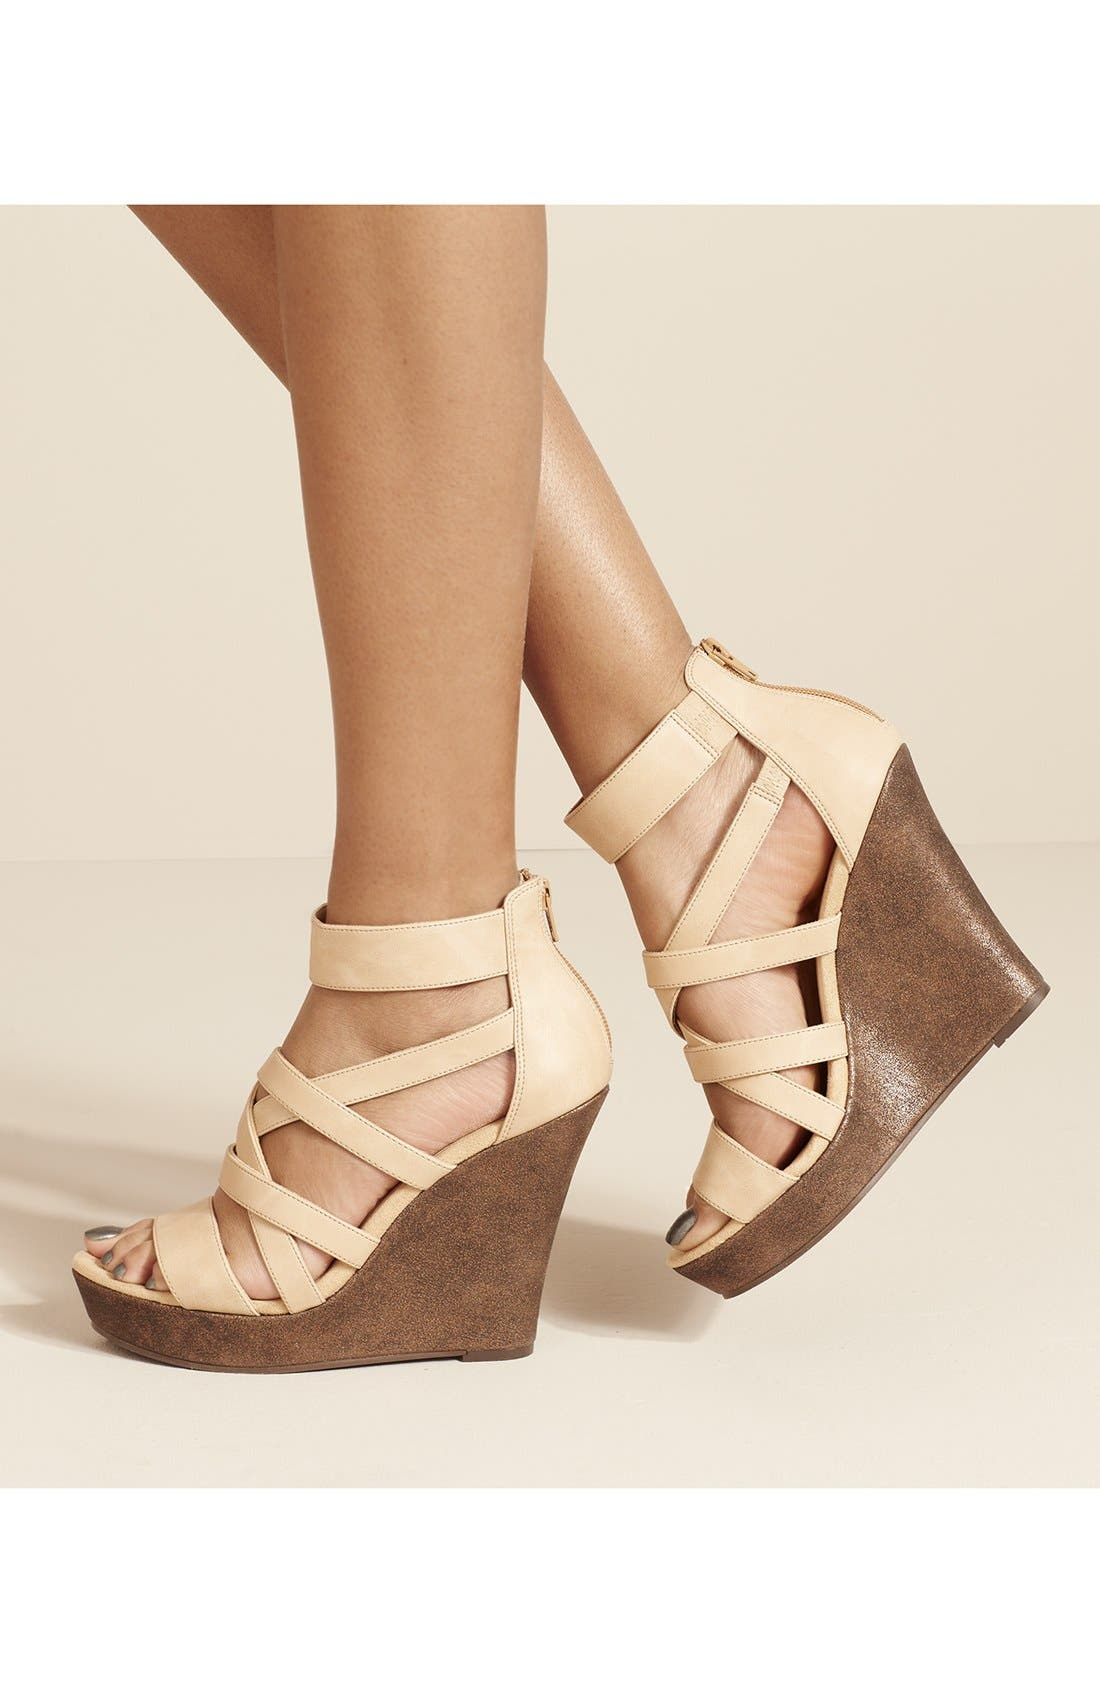 'Tell You What' Wedge Sandal,                             Alternate thumbnail 5, color,